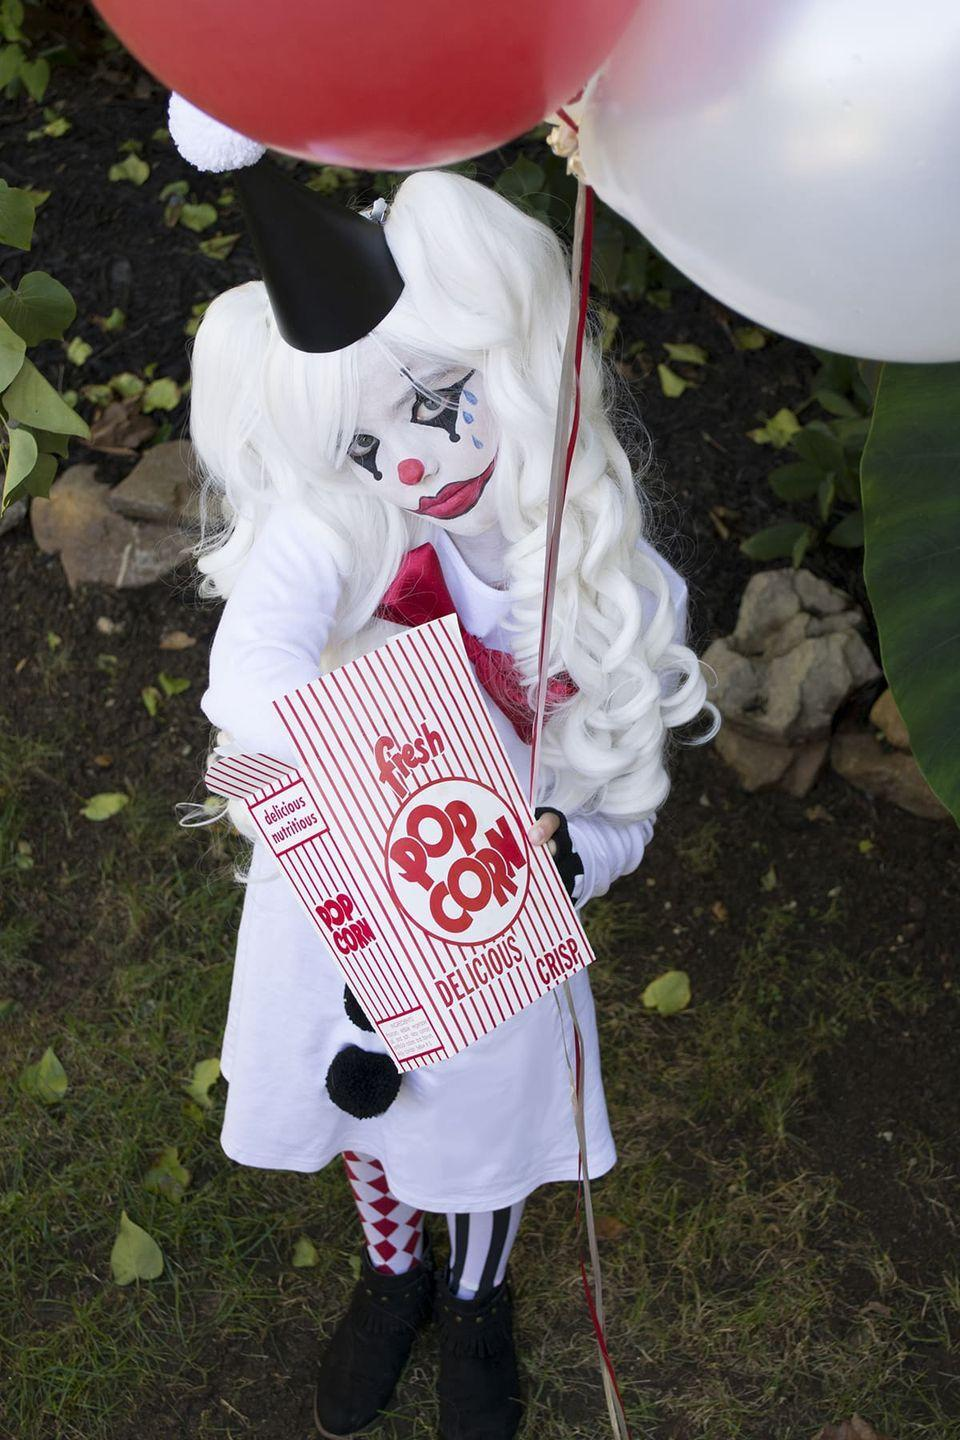 """<p>This spooky costume is anything <em>but</em> sad! Your <a href=""""https://www.countryliving.com/diy-crafts/g21603260/diy-halloween-costumes-for-tweens/"""" rel=""""nofollow noopener"""" target=""""_blank"""" data-ylk=""""slk:tween"""" class=""""link rapid-noclick-resp"""">tween</a> will love this unique and easy costume idea, which calls for a simple white dress or T-shirt and minimal makeup application. </p><p><strong>See more at <a href=""""https://cuckoo4design.com/easy-and-unique-sad-clown-costume/"""" rel=""""nofollow noopener"""" target=""""_blank"""" data-ylk=""""slk:Cuckoo 4 Design"""" class=""""link rapid-noclick-resp"""">Cuckoo 4 Design</a>. </strong> </p>"""